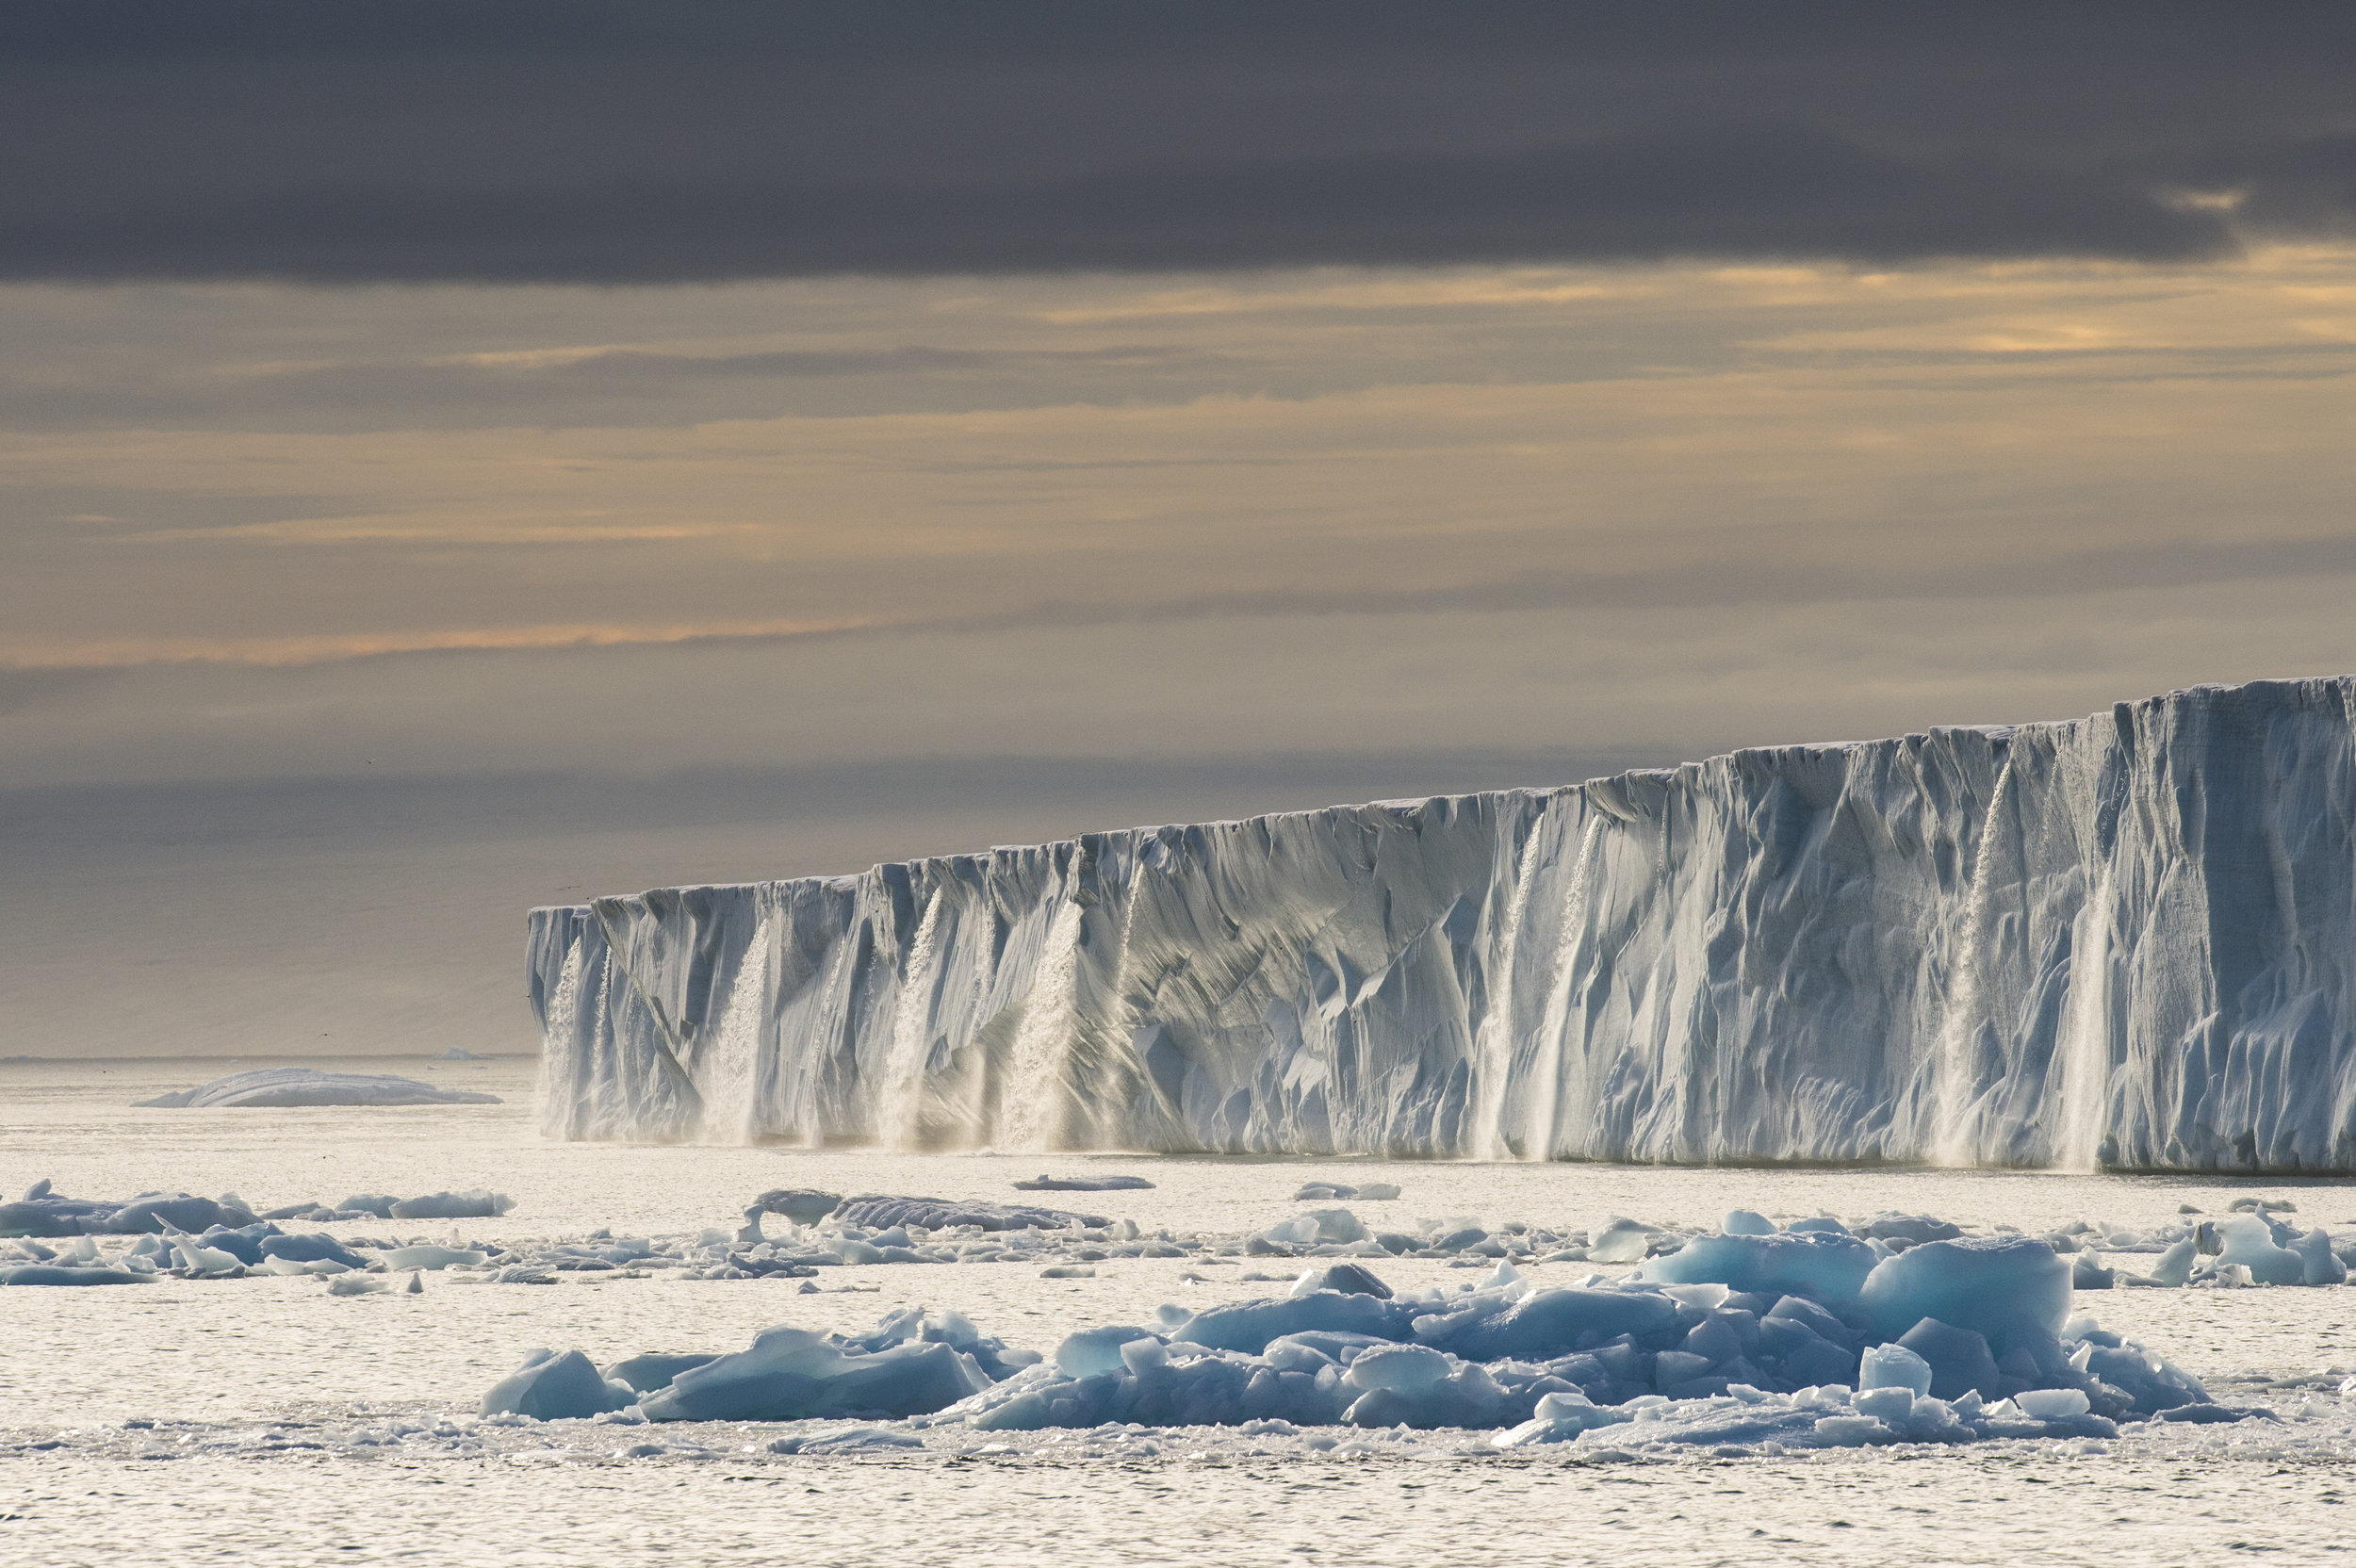 Glacier Galore in Svalbard. Photo by:Roy Mangersnes - wildphoto.no_www.nordnorge.com